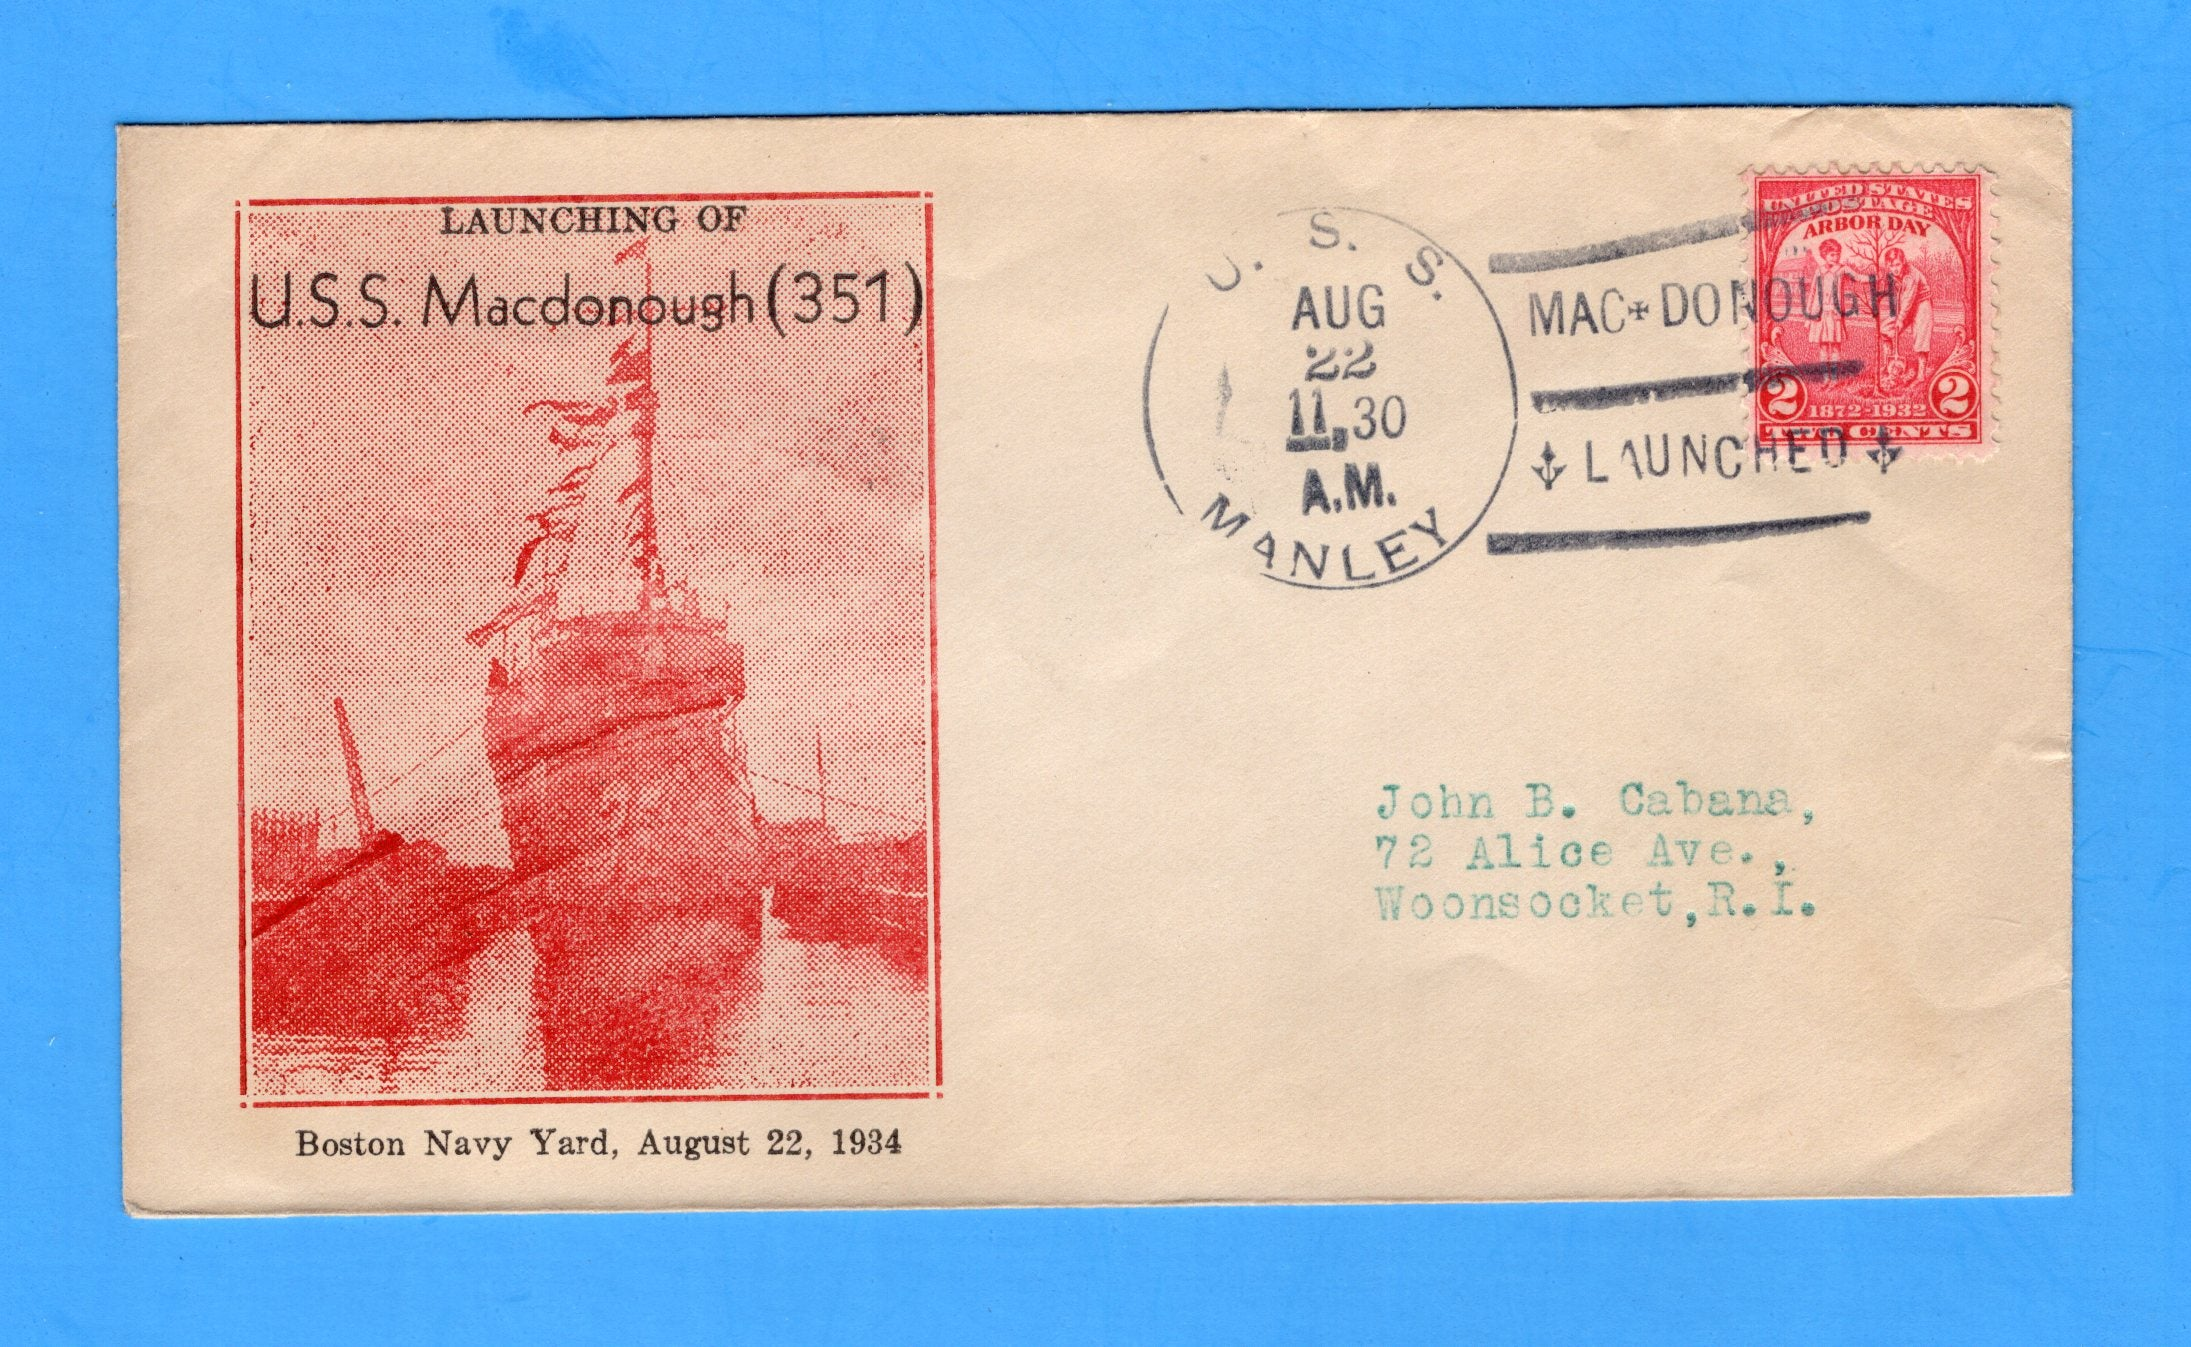 USS MacDonough DD-351 Launched August 22, 1934 - Cancelled USS Manley